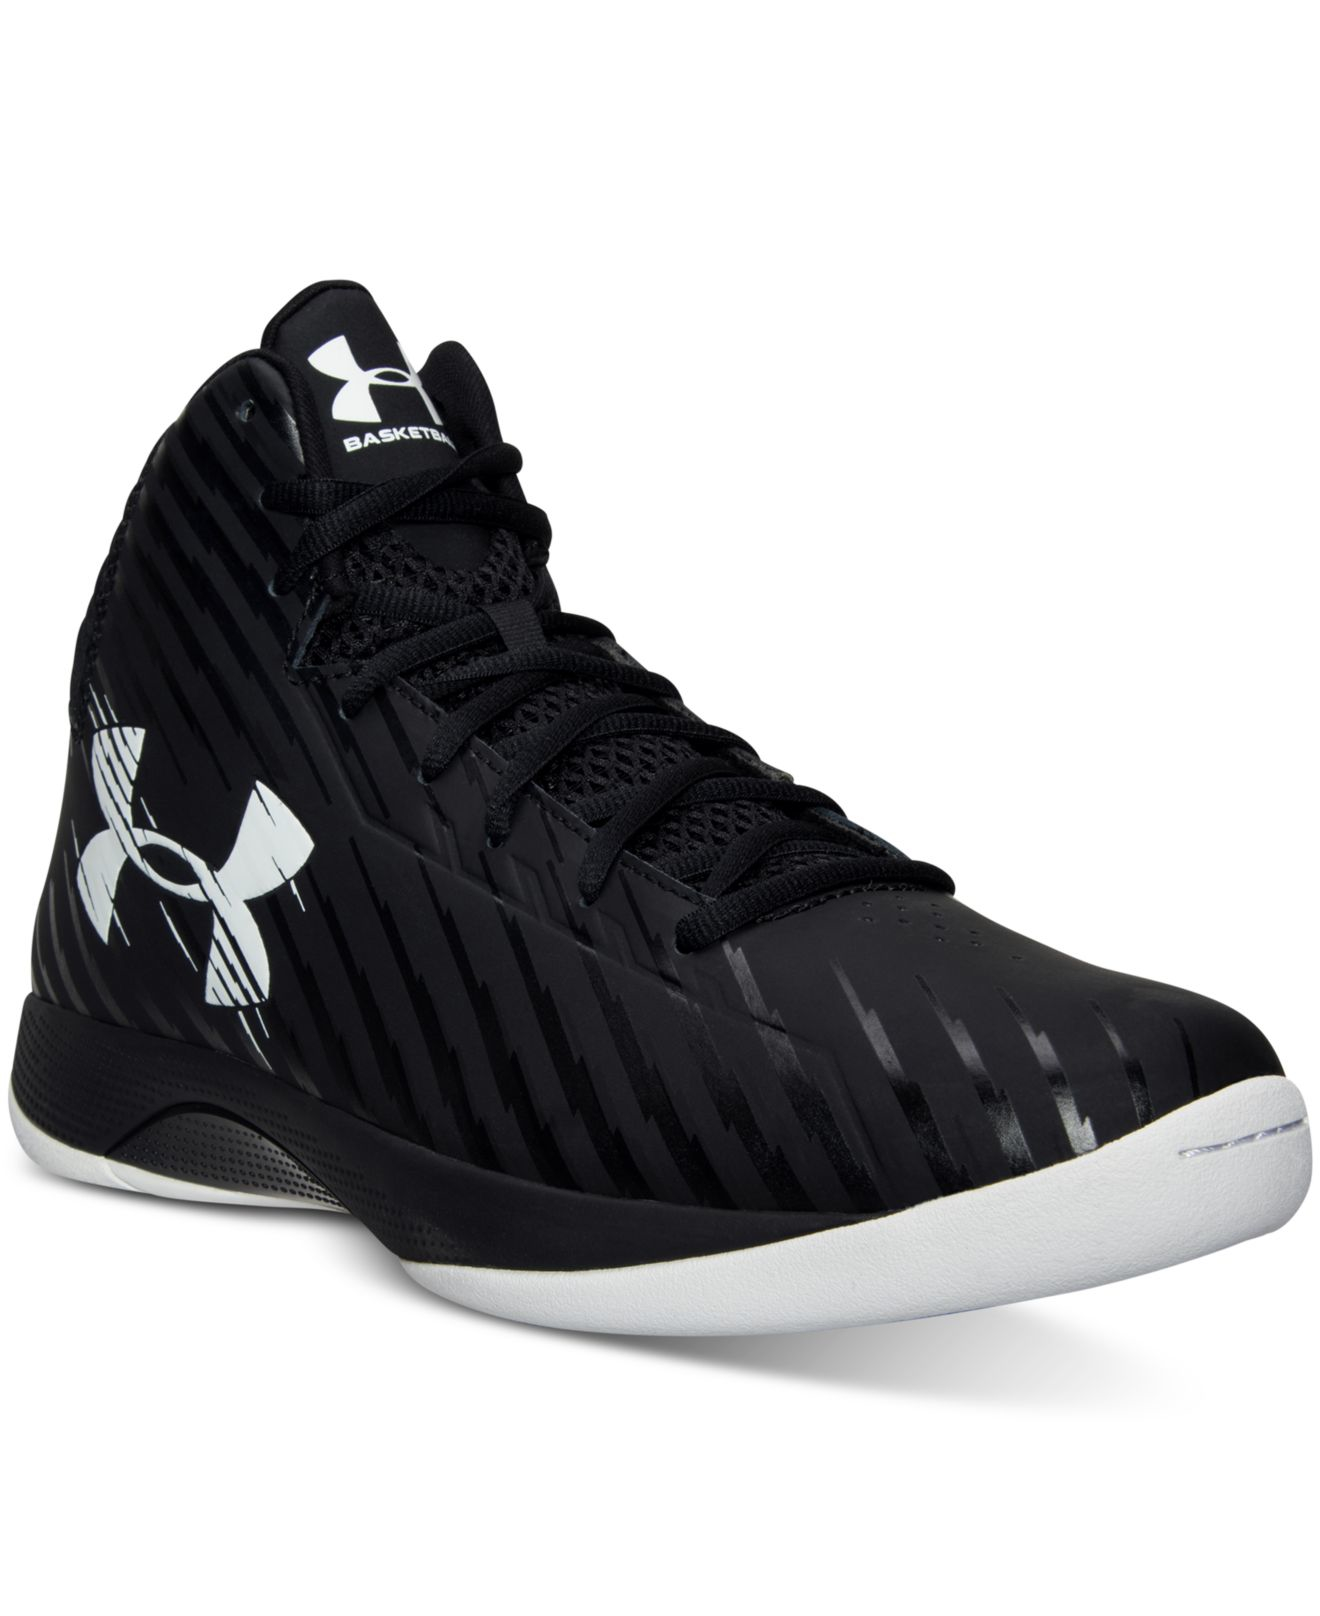 bc70b09d698a Under Armour Men s Jet Basketball Sneakers From Finish Line in Black ...